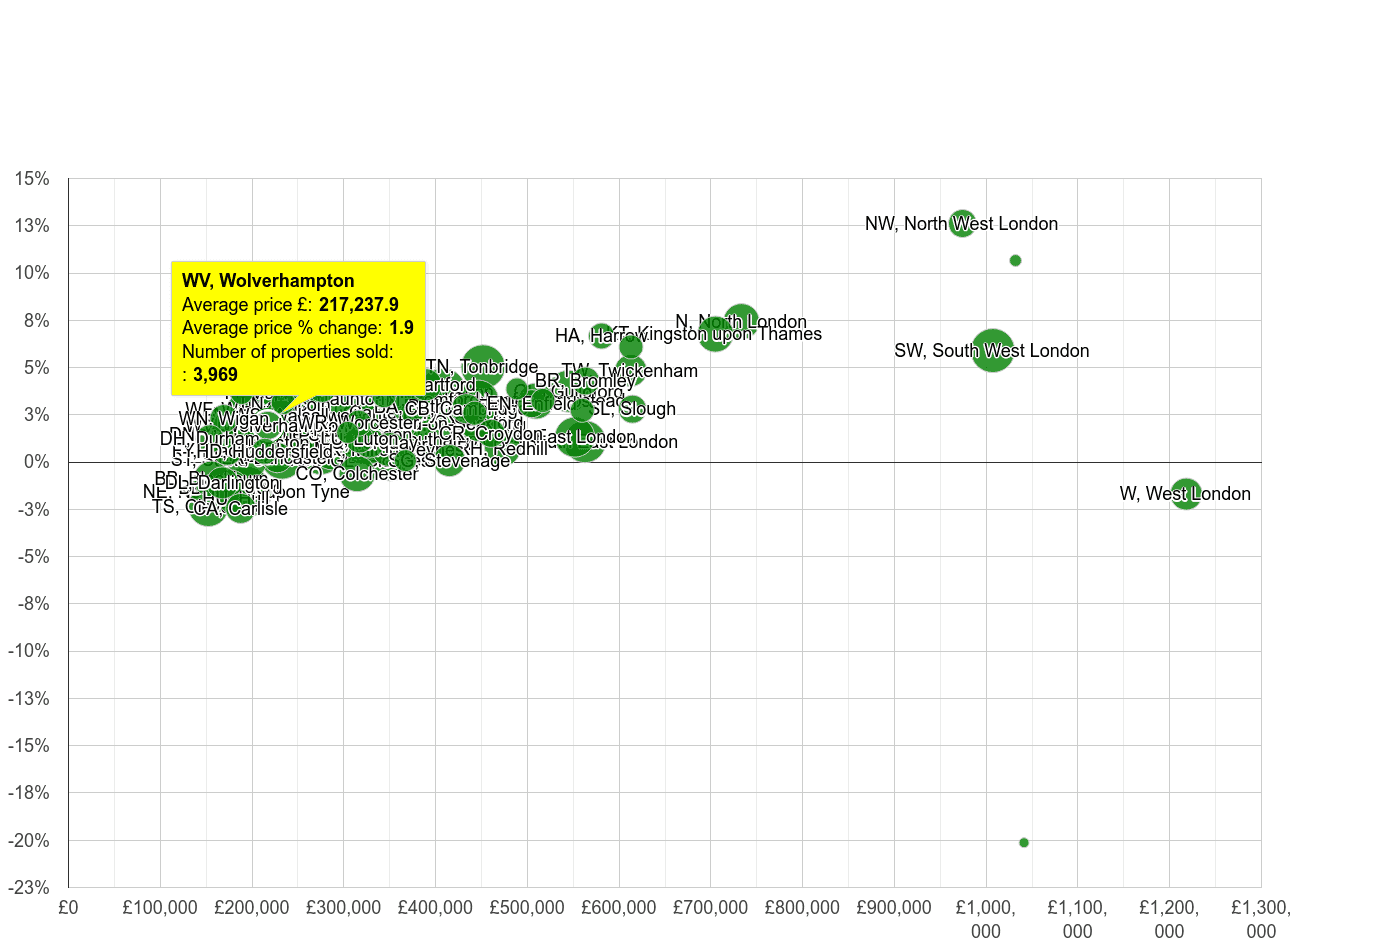 Wolverhampton house prices compared to other areas